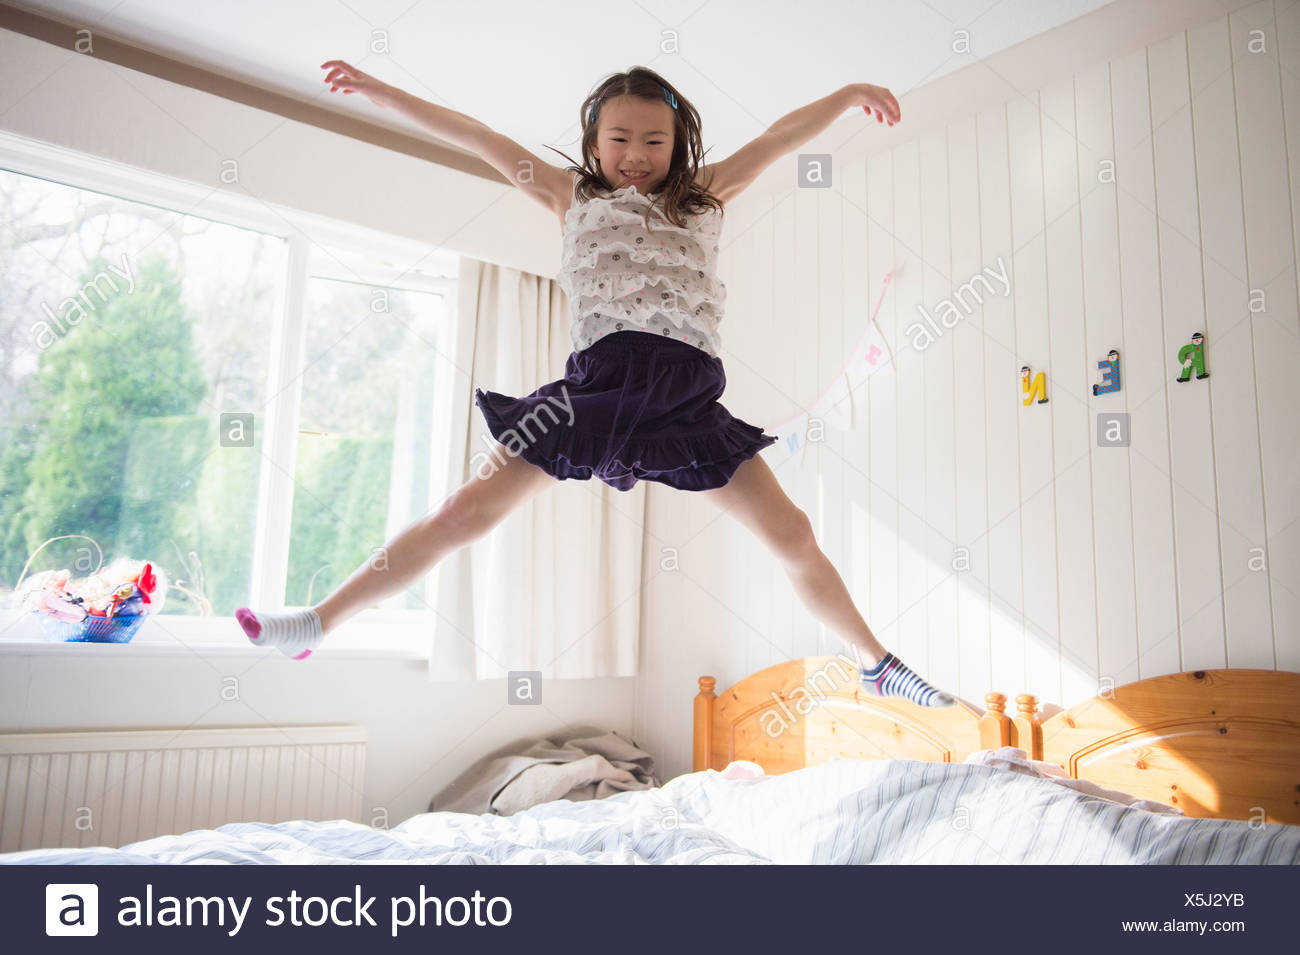 Young girl jumping mid air on bed - Stock Image